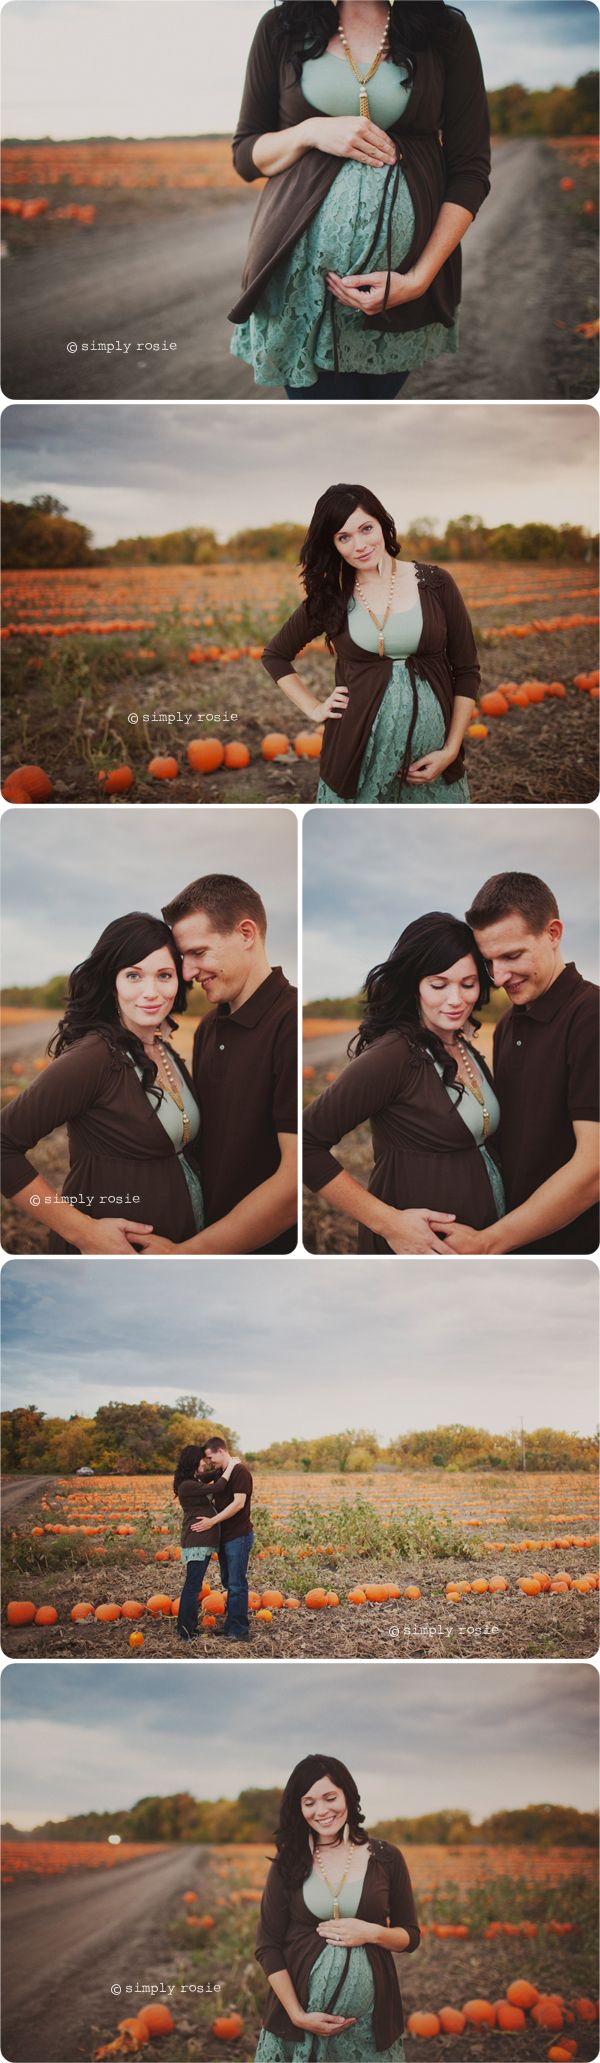 Fall pregnancy pictures. Maternity photo idea #togally #maternity #maternityphoto www.togally.com